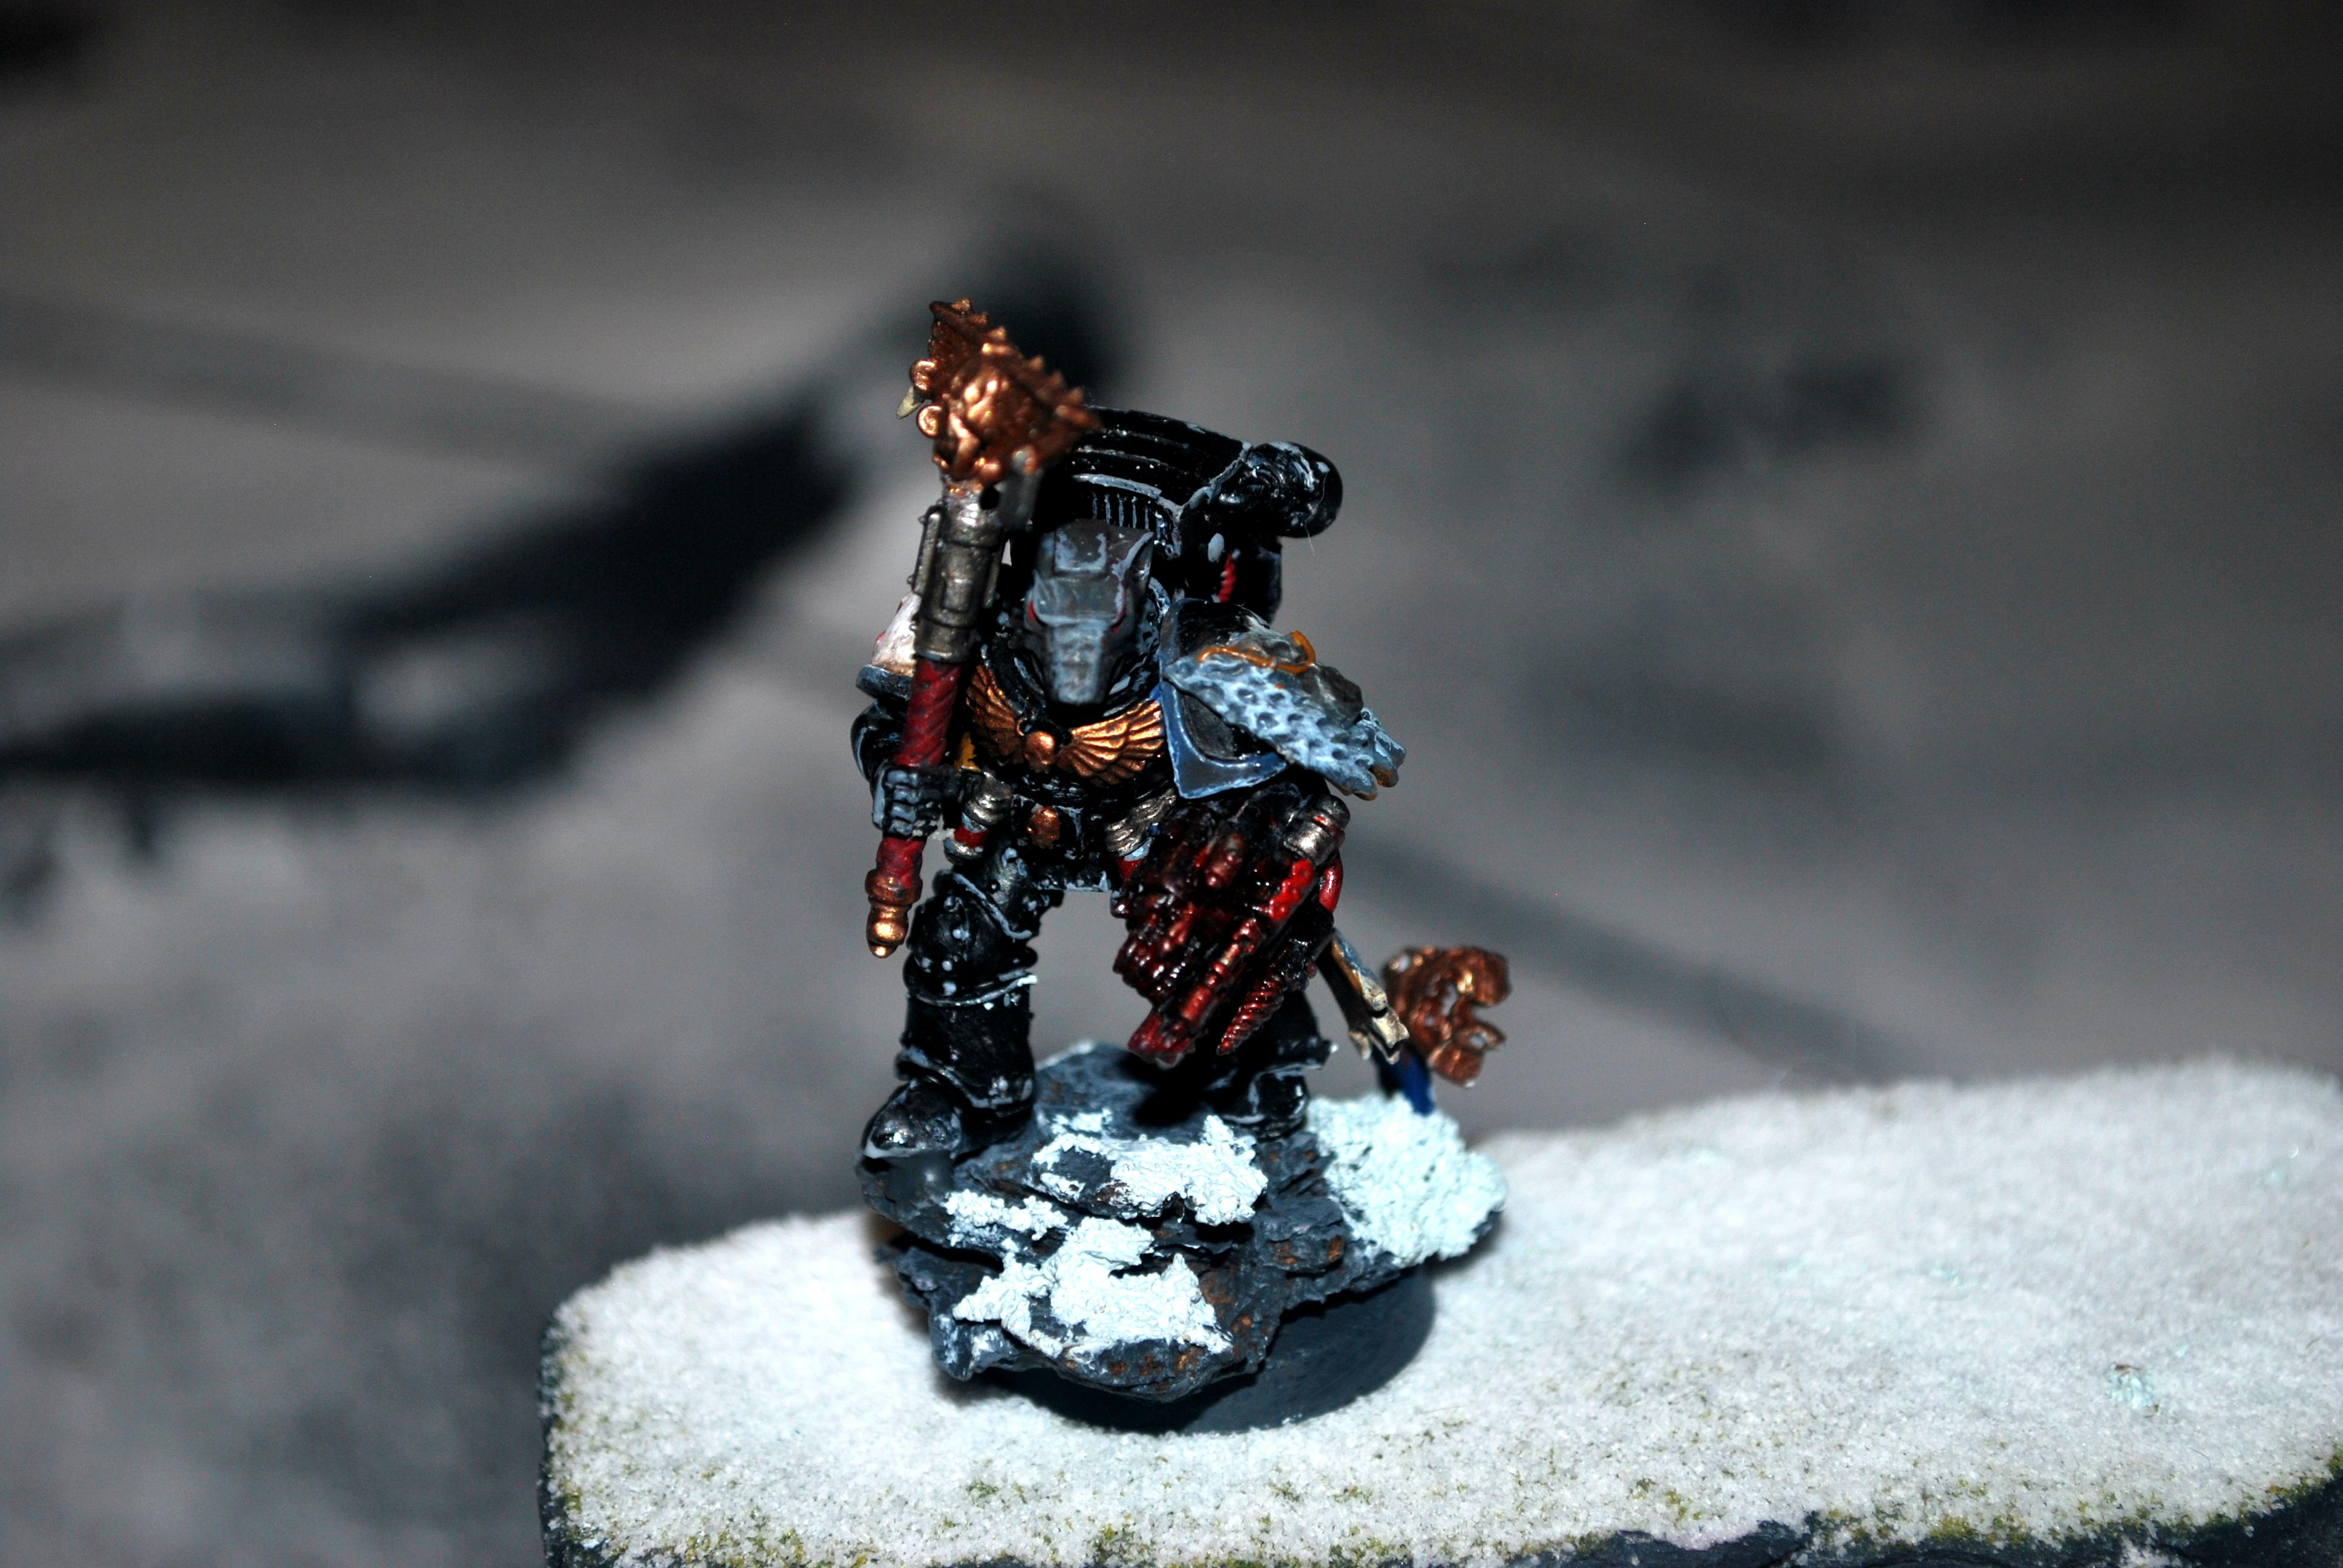 Apothecary, Arcanum, Bash, Chaplin, Conversion, Crozius, Jet, Jump, Kit, Mace, Maul, Pack, Power, Priest, Sons, Space, Thousand, Weapon, Winter, Wolf, Wolves